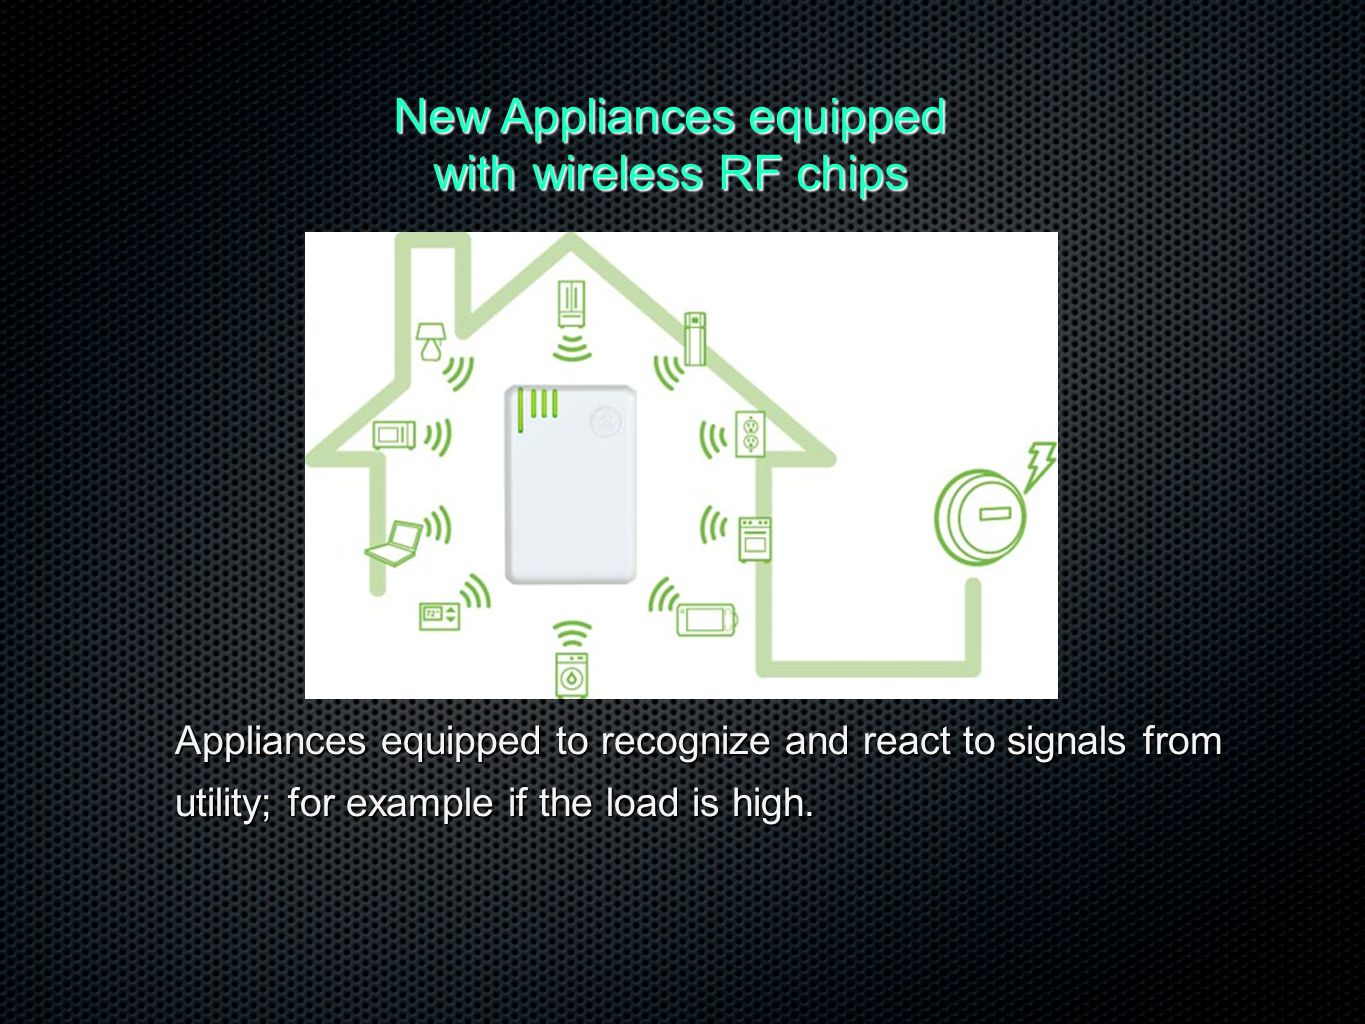 New Appliances equipped with wireless RF chips Appliances equipped to recognize and react to signals from utility; for example if the load is high.